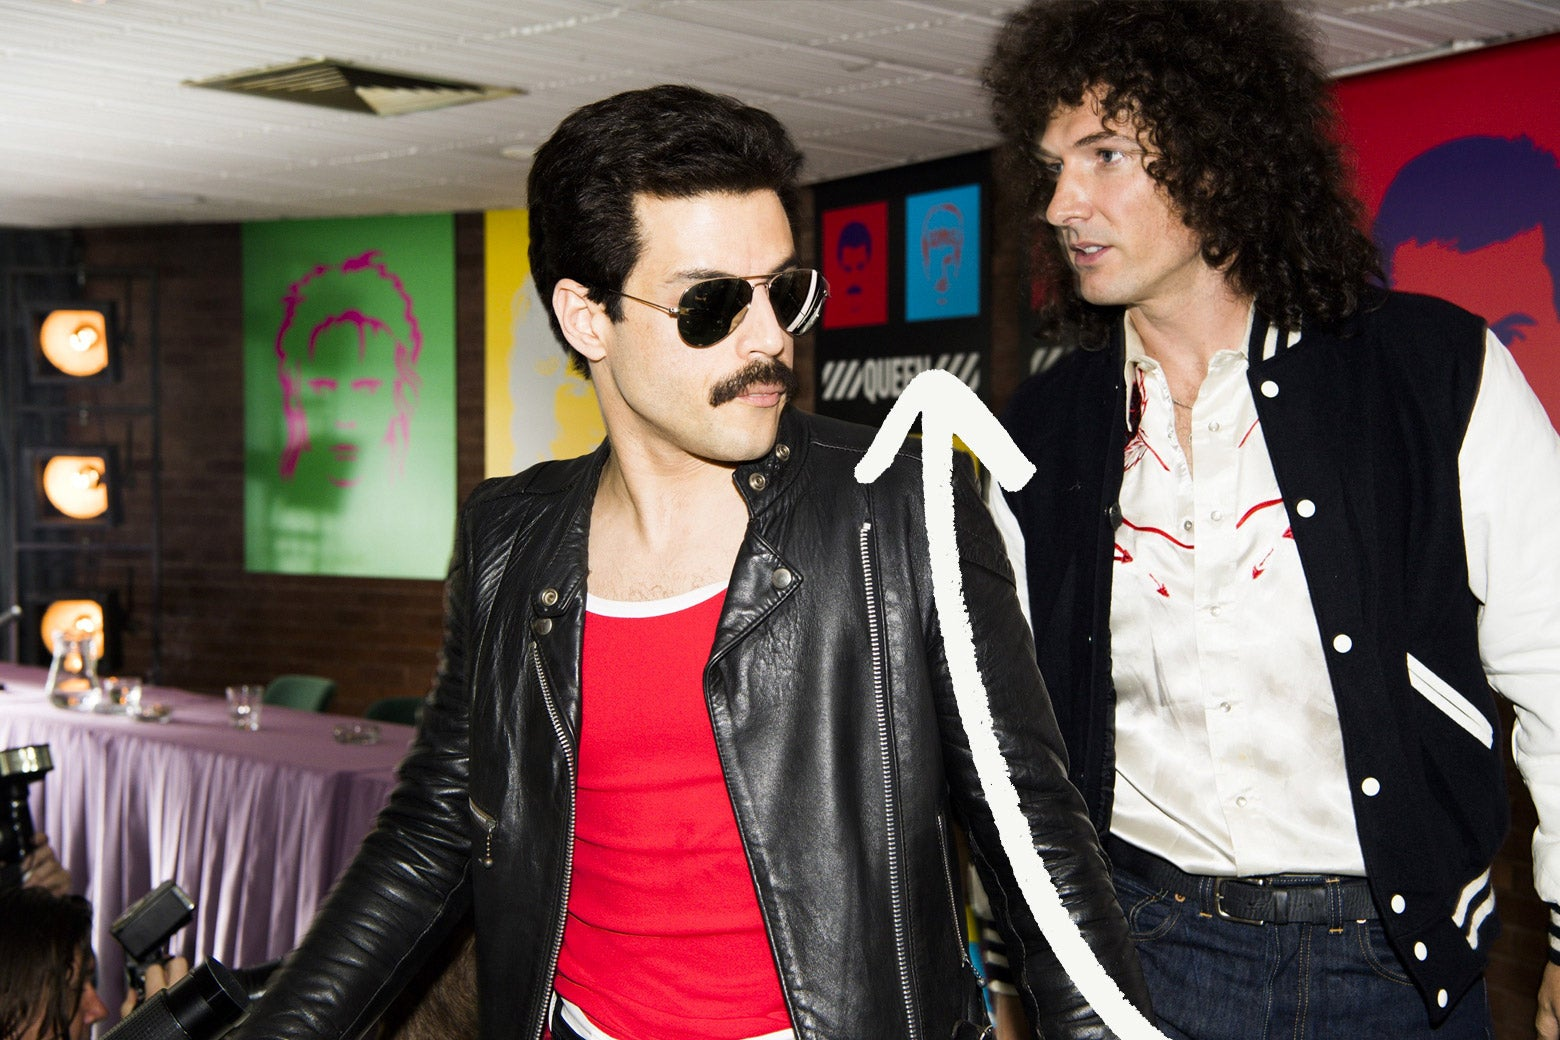 Scene from Bohemian Rhapsody with Hot Space album art in background